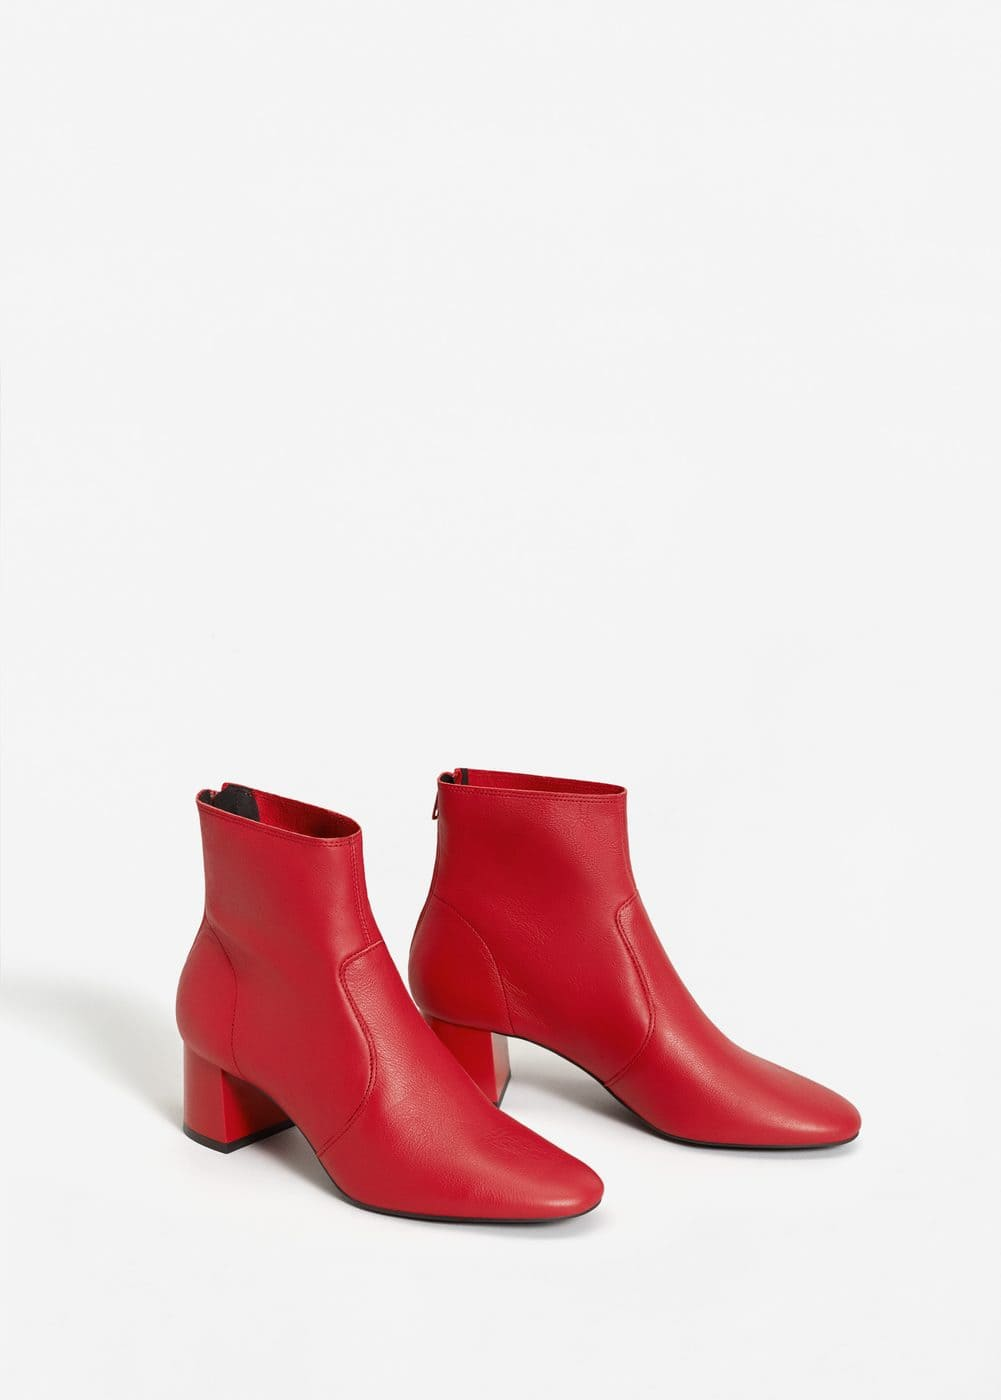 Bottines cuir à talon | MANGO